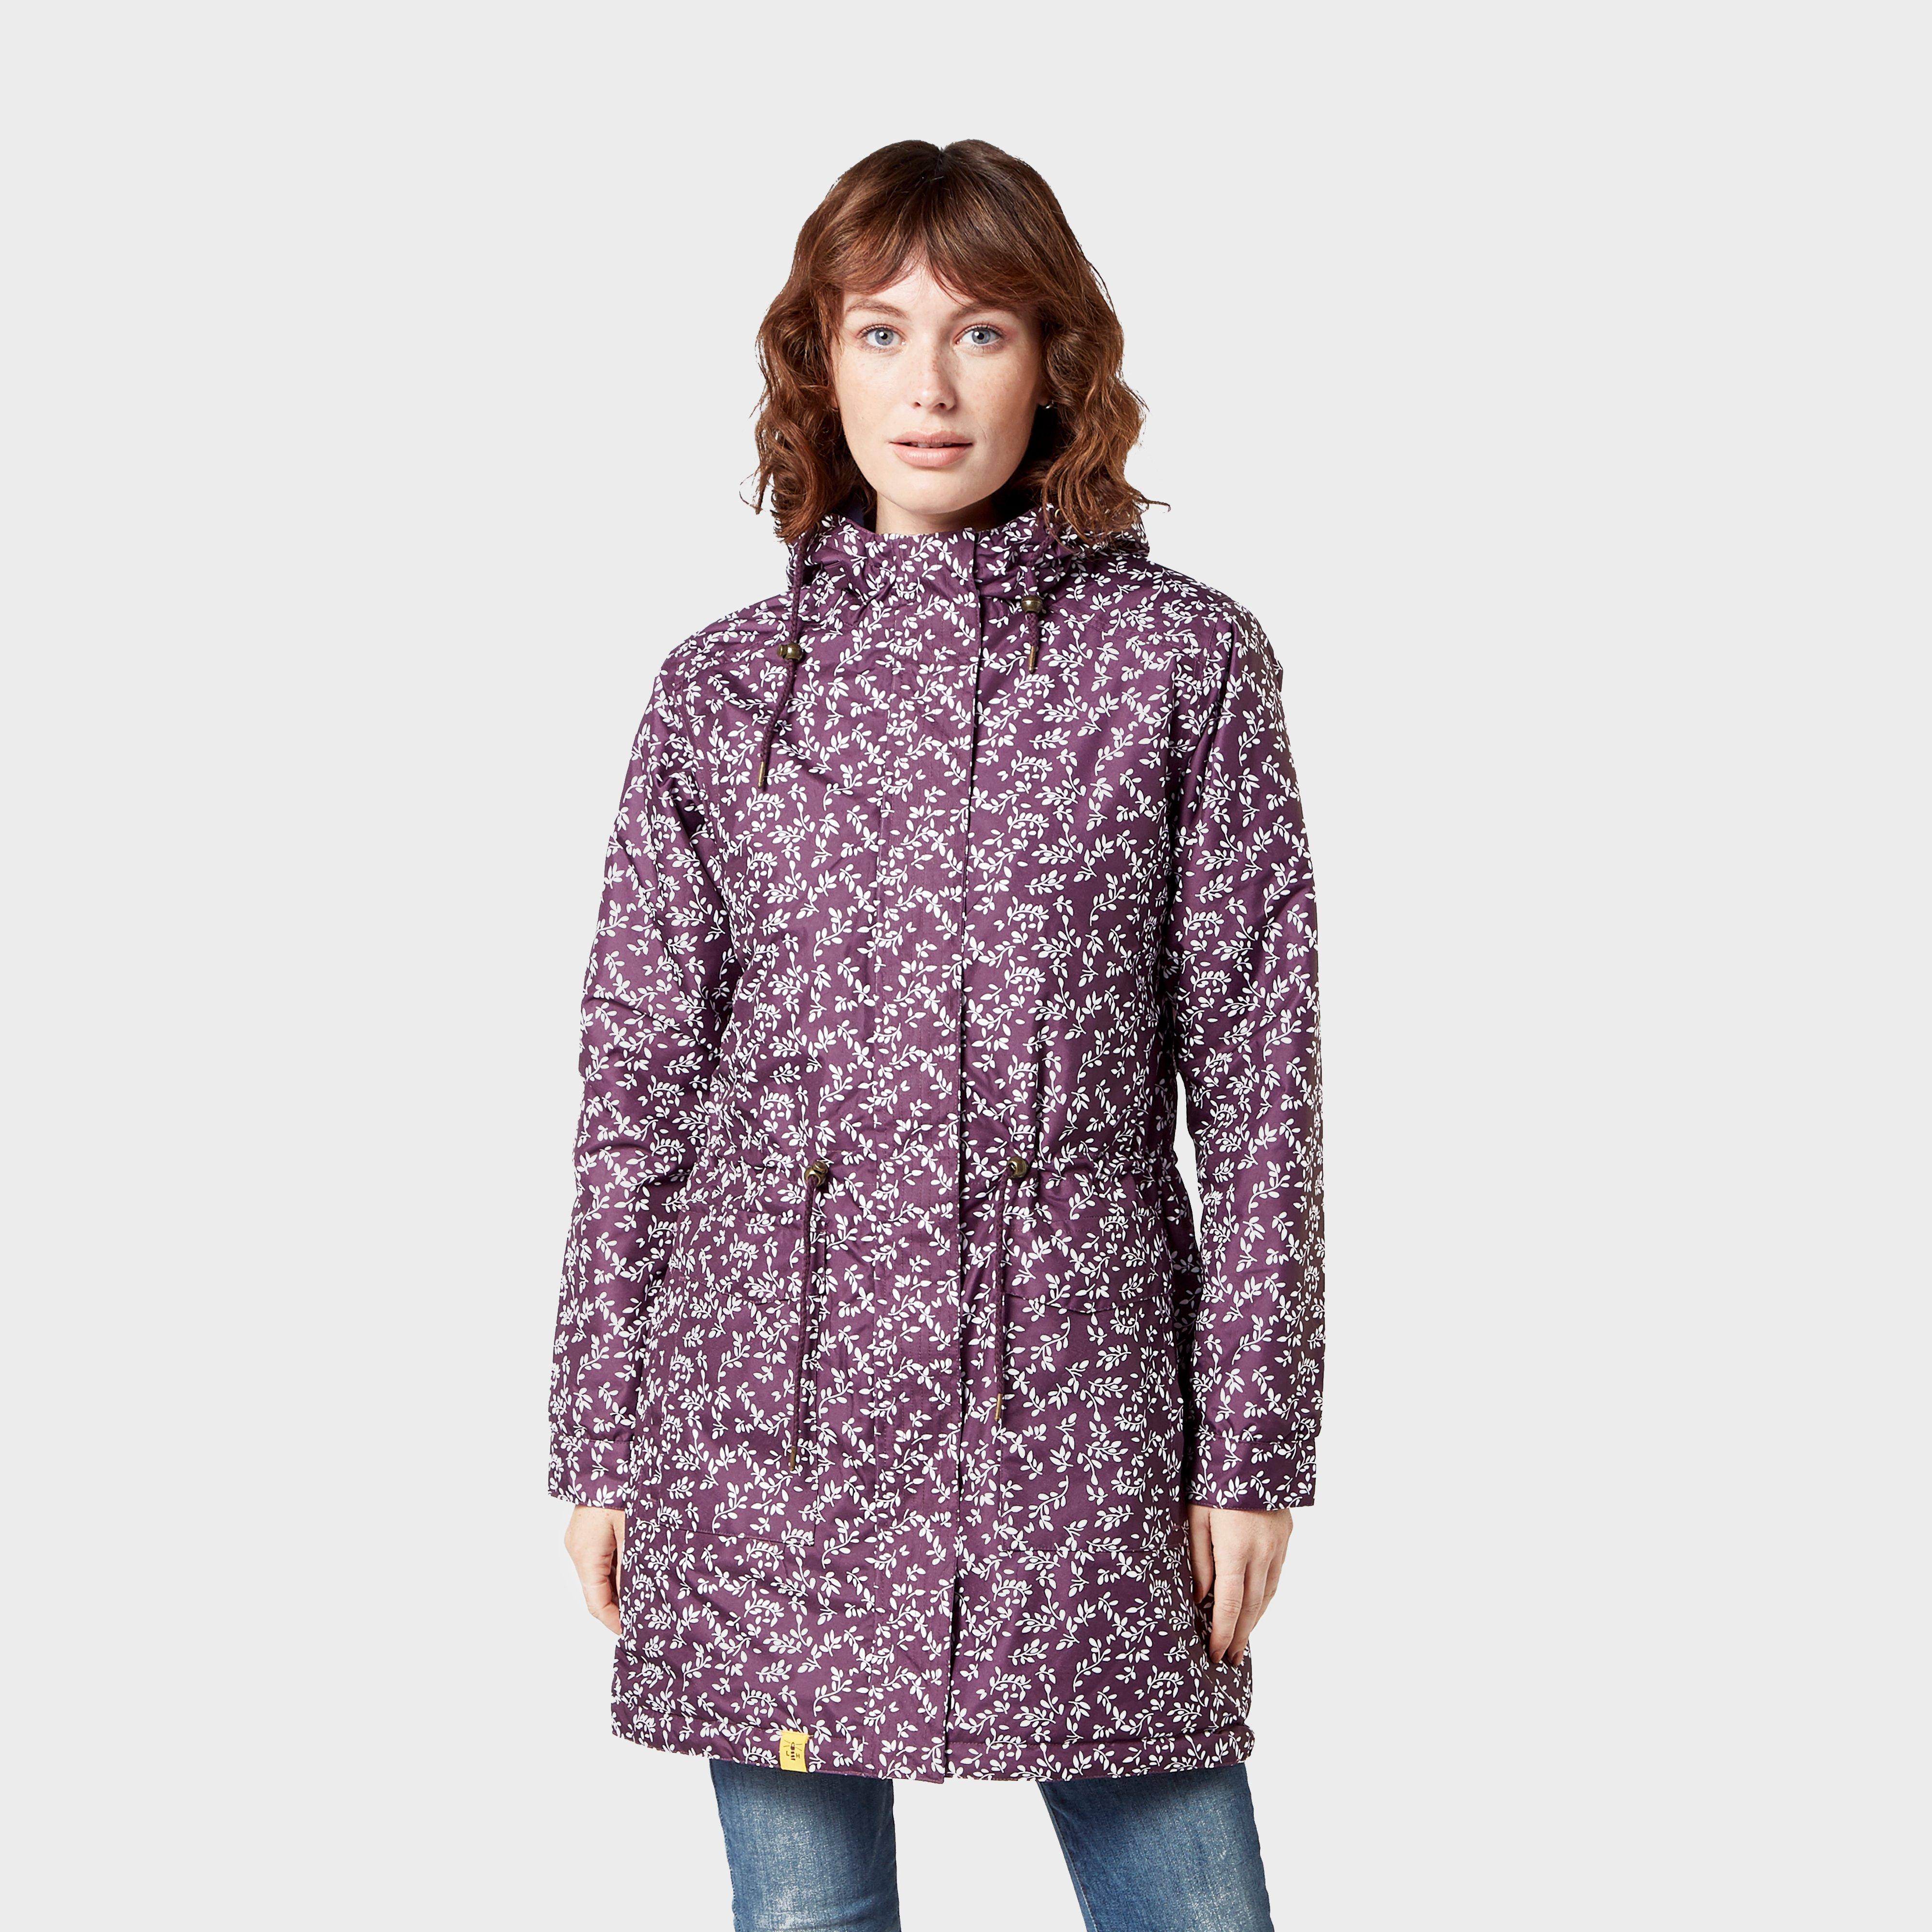 Lighthouse Women's Lauren Jacket, Purple